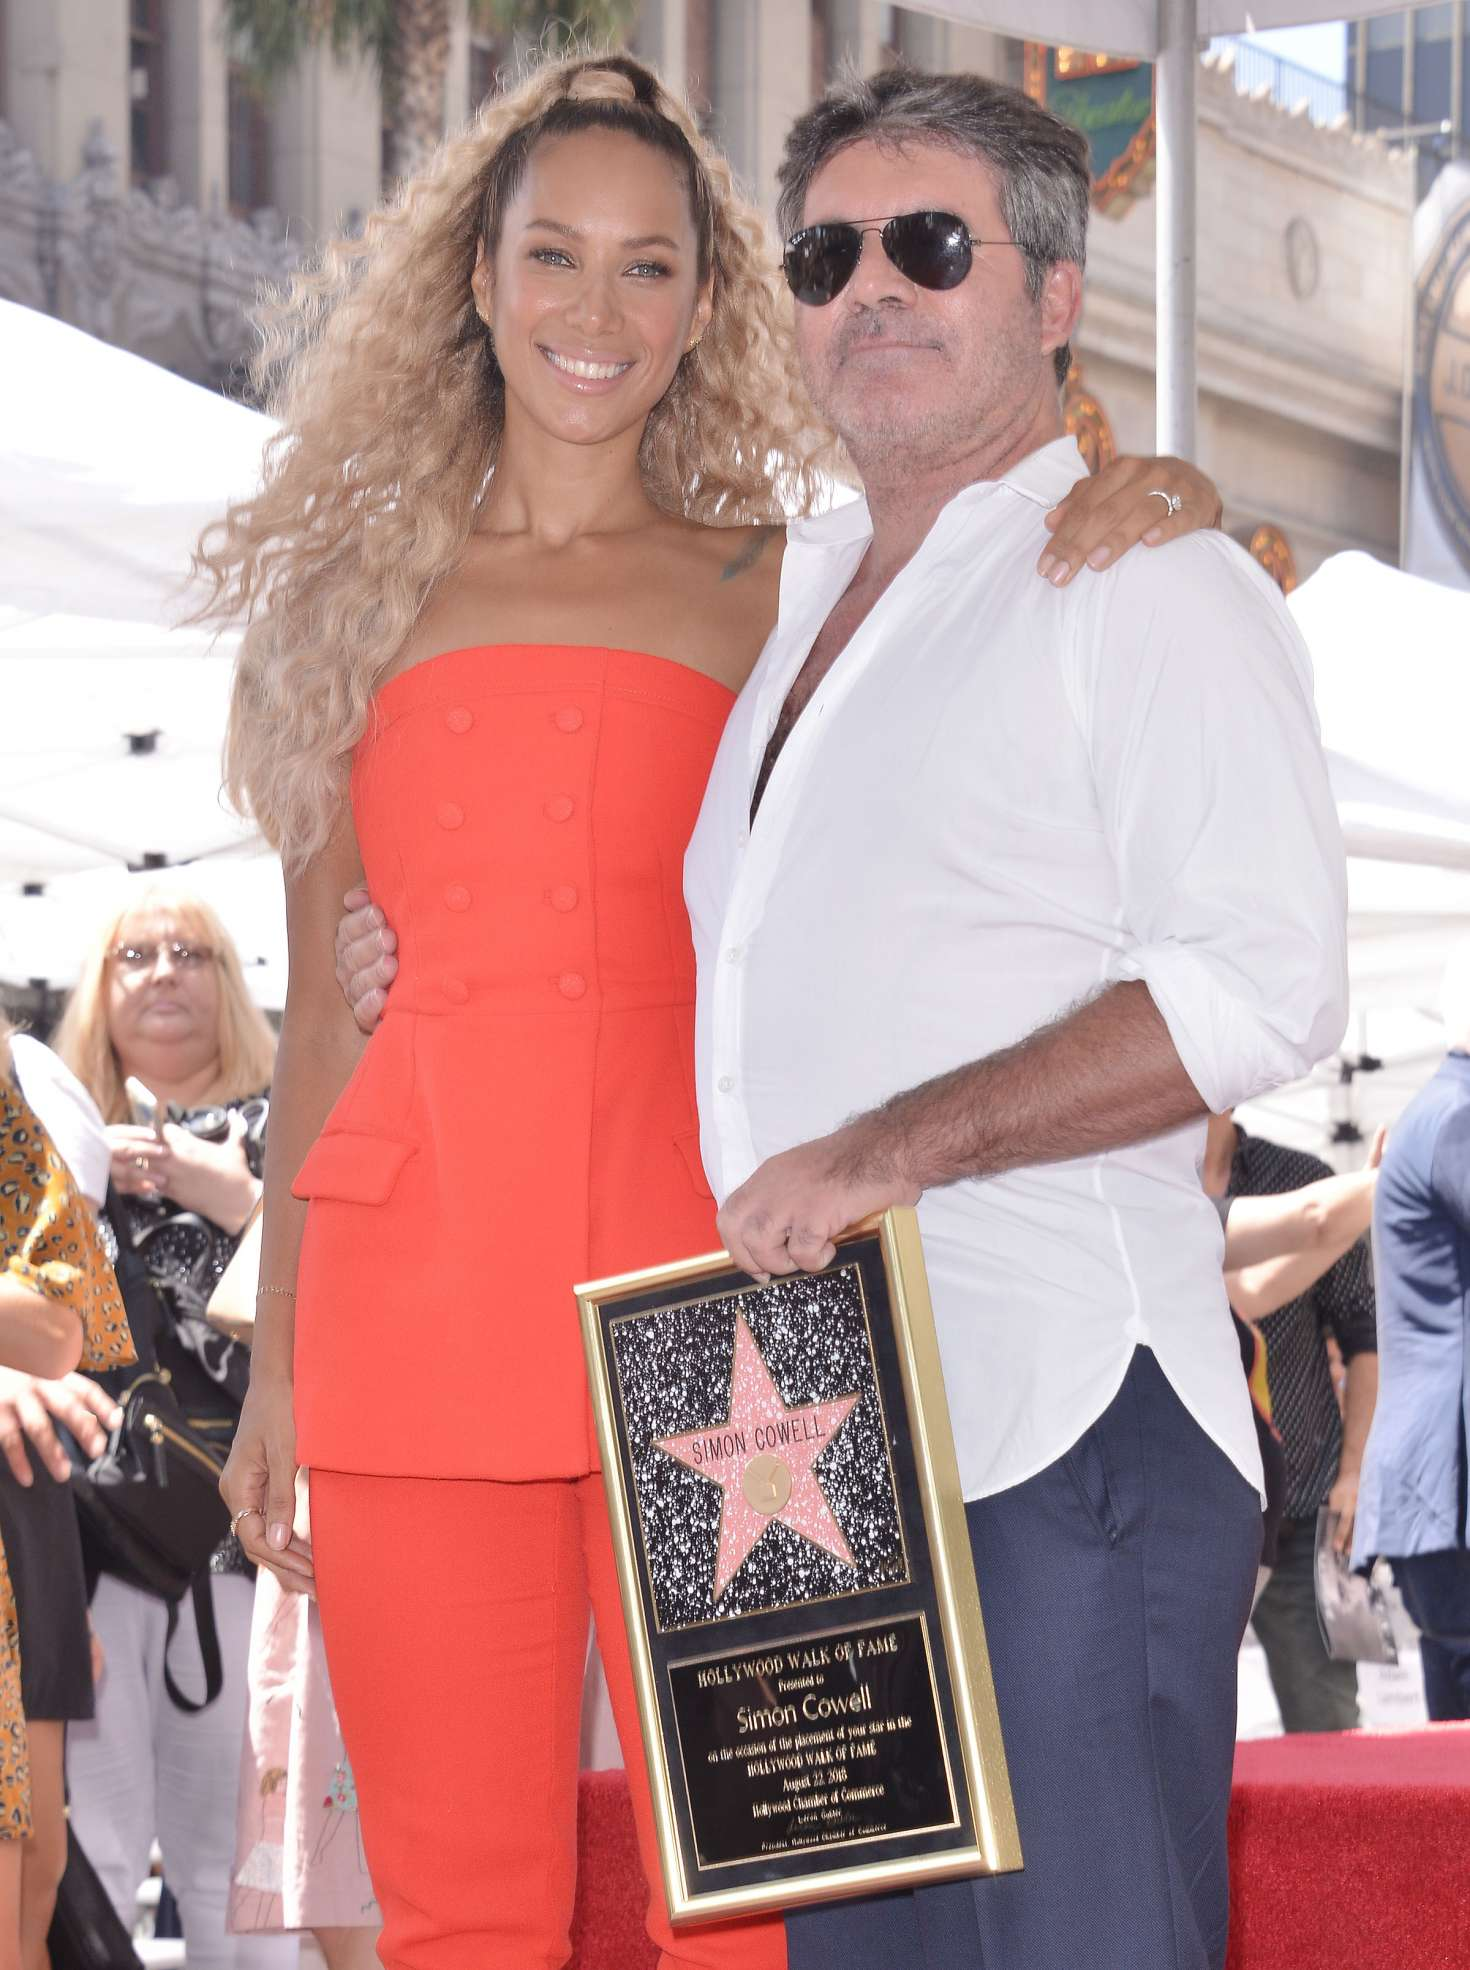 Leona Lewis 2018 : Leona Lewis: Simon Cowell Star On The Hollywood Walk Of Fame Ceremony -01